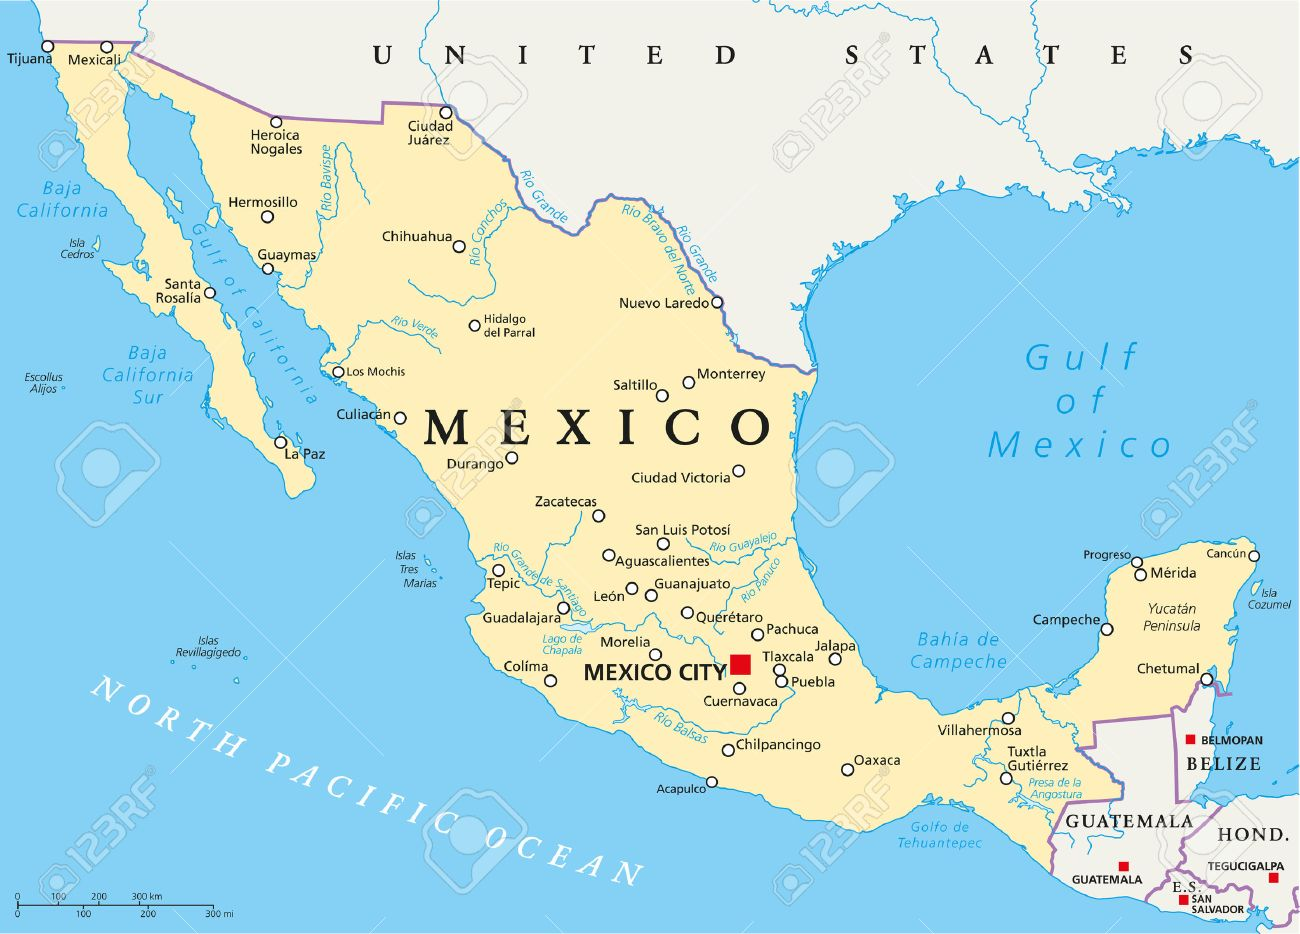 Mexico Political Map With Capital Mexico City National Borders - Map of mexico